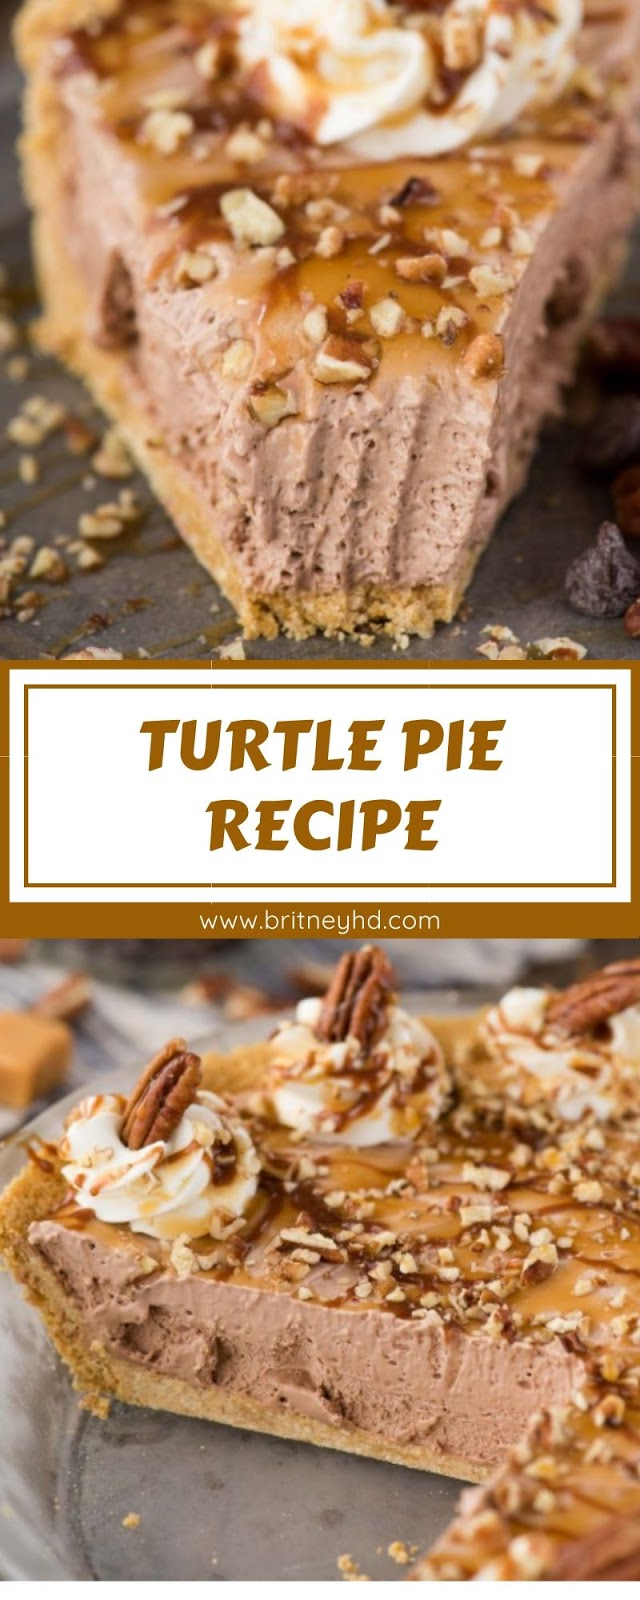 TURTLE PIE RECIPE